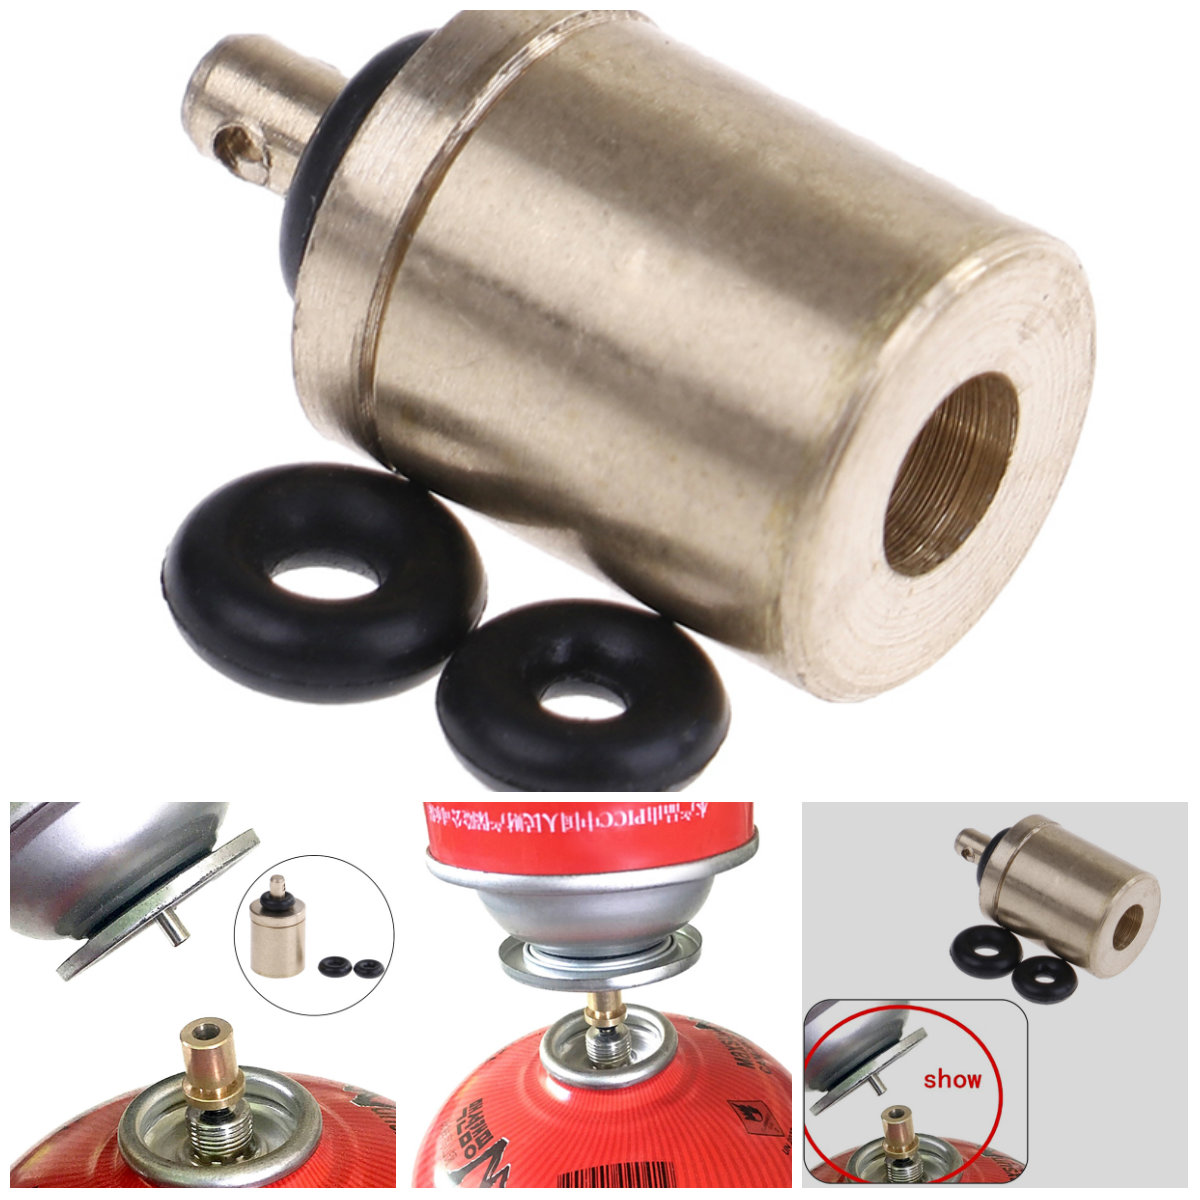 Gas Refill Adapter Outdoor Camping Stove Gas Cylinder Gas Tank Gas  Accessories Hiking Inflate Butane Canister